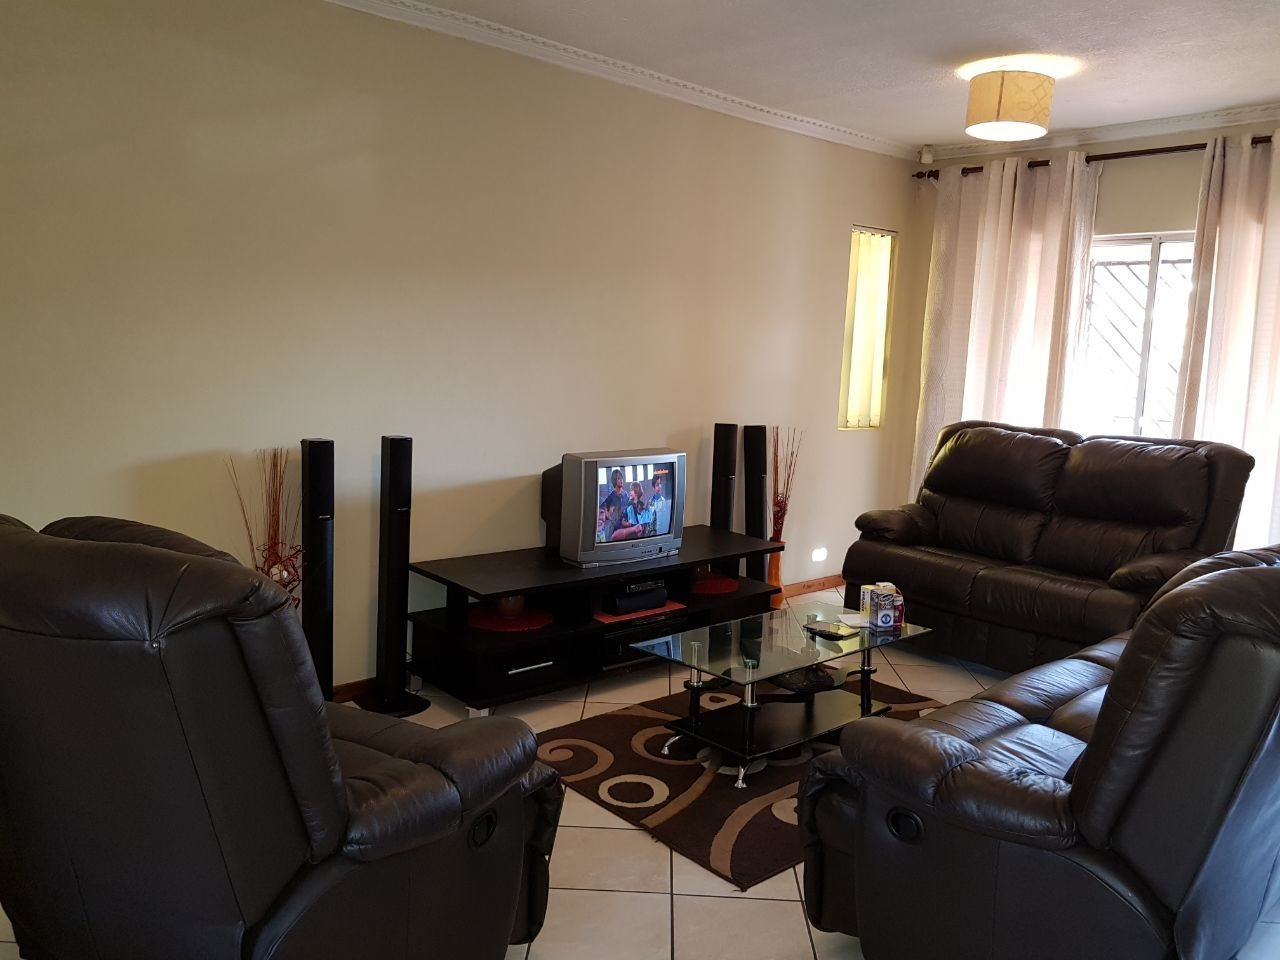 3 Bedroom House for sale in Montana Park ENT0067080 : photo#4